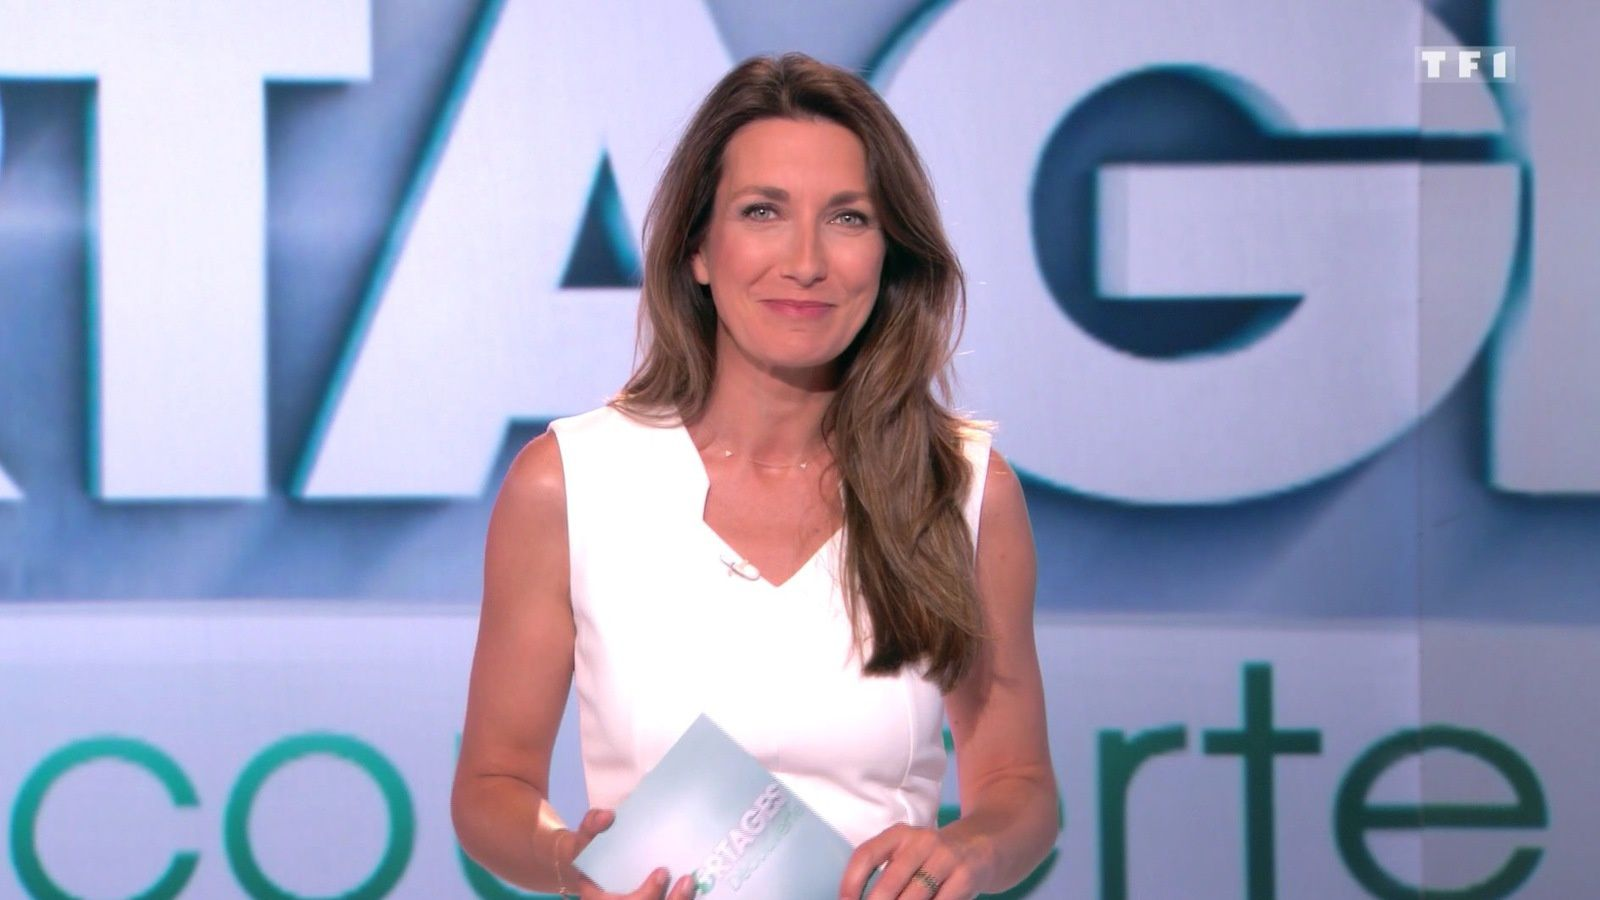 📸4 ANNE-CLAIRE COUDRAY @ACCoudray @TF1 pour REPORTAGES DECOUVERTE ce midi #vuesalatele